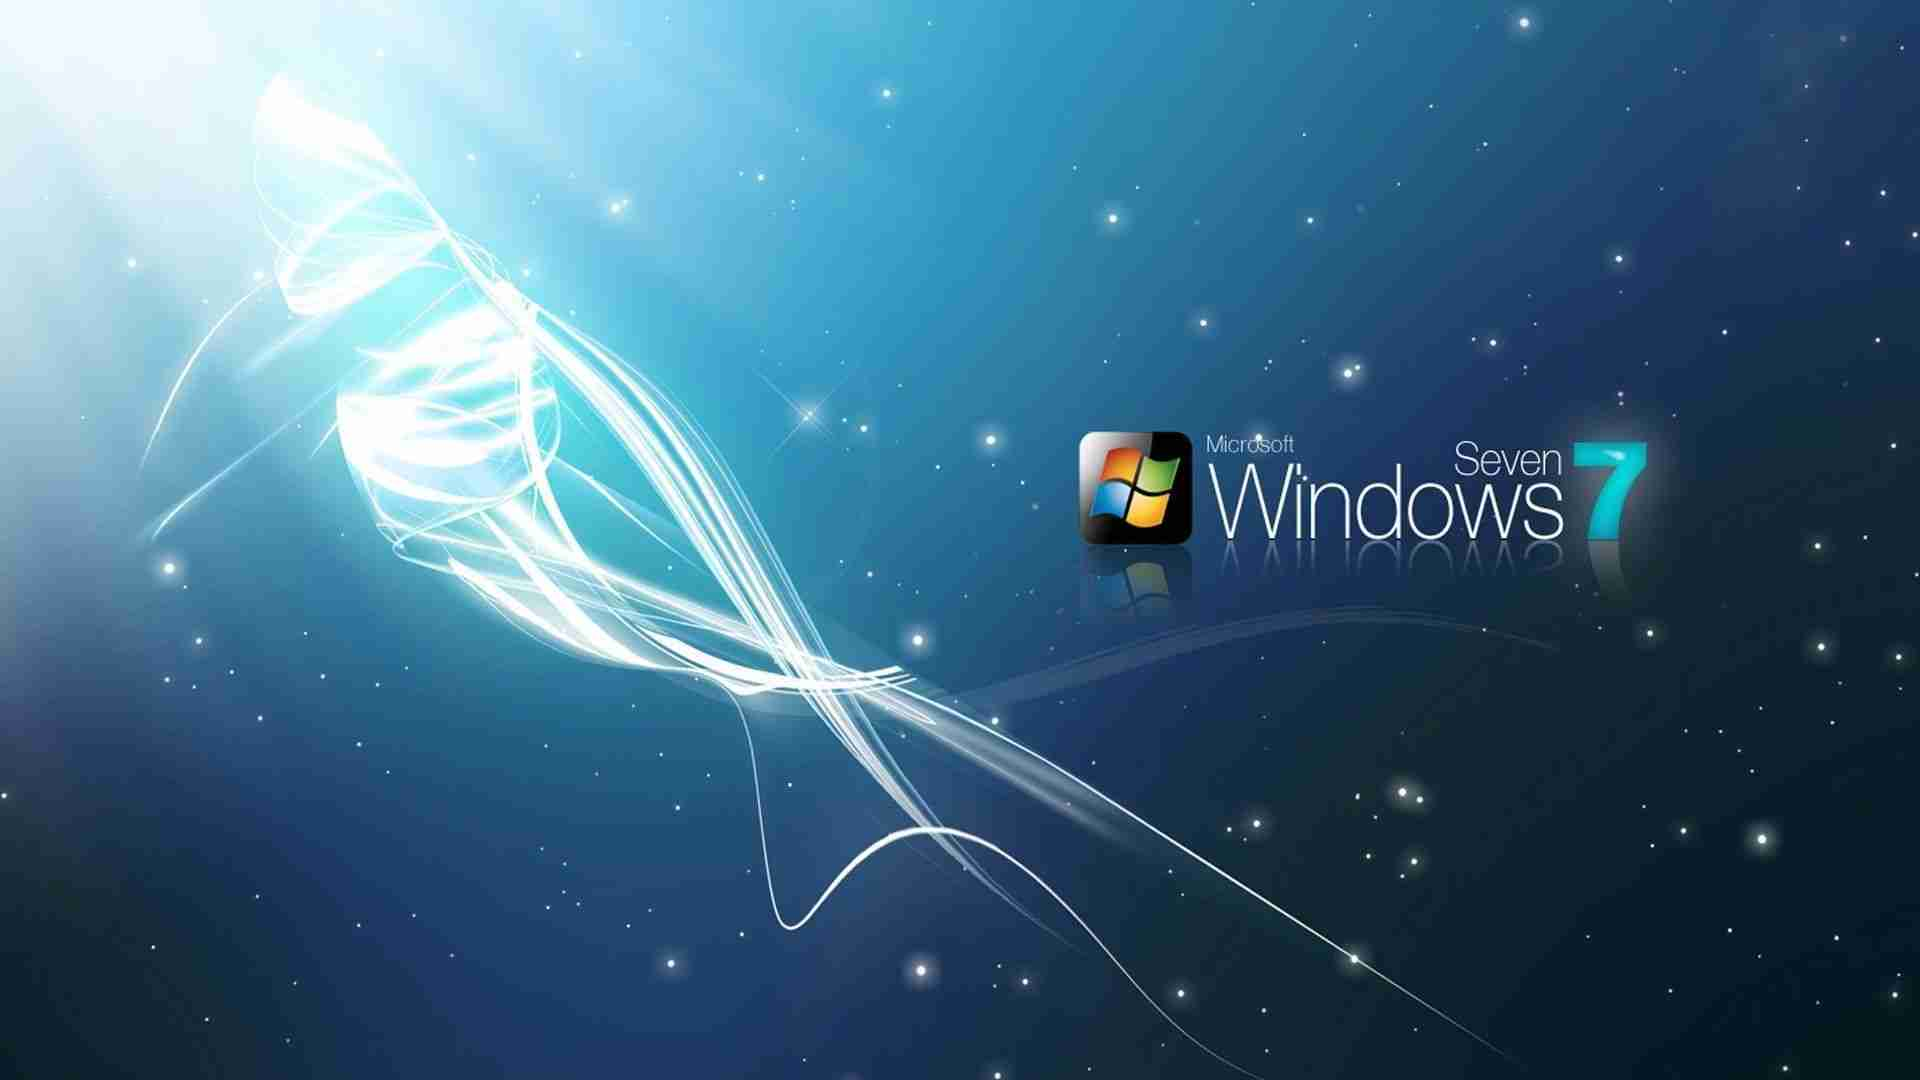 Windows 7 wallpaper 13